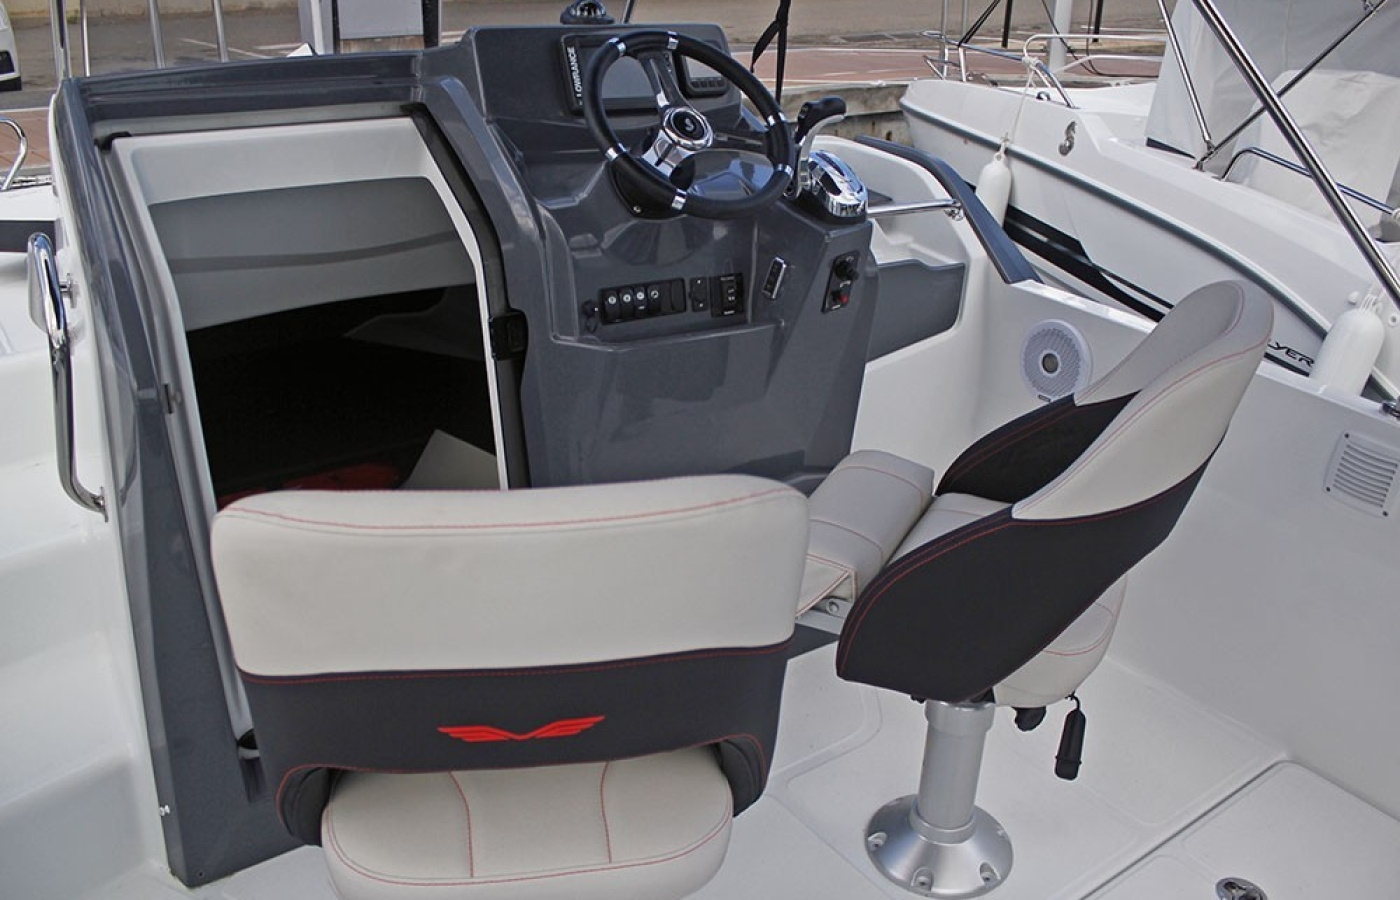 Cockpit of the boat and the seats